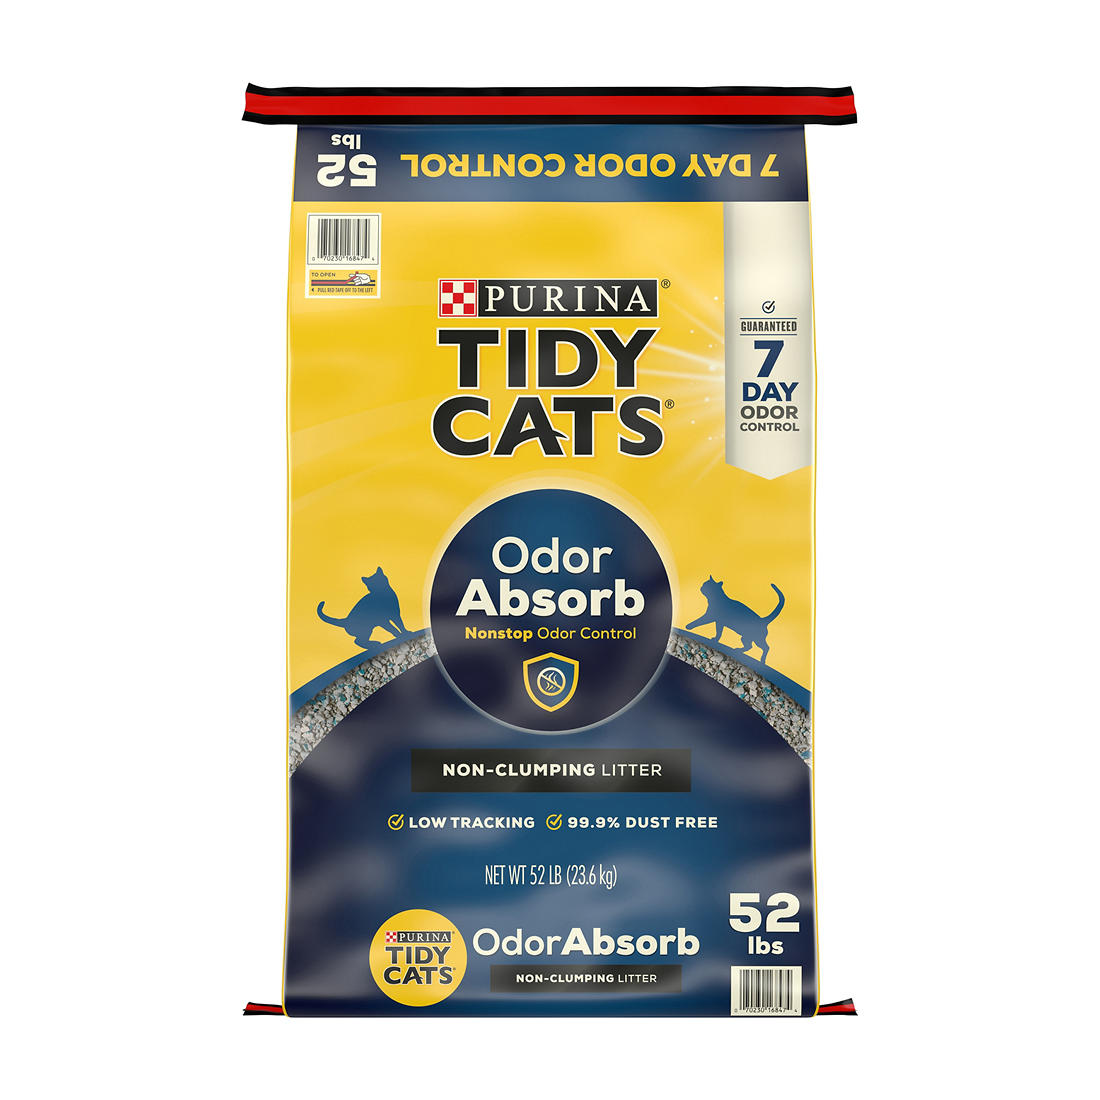 photograph regarding Tidy Cat Printable 3.00 Coupon called Purina Tidy Cats Nonstop Scent Take care of Non-Clumping Clay Clutter, 52 kilos.